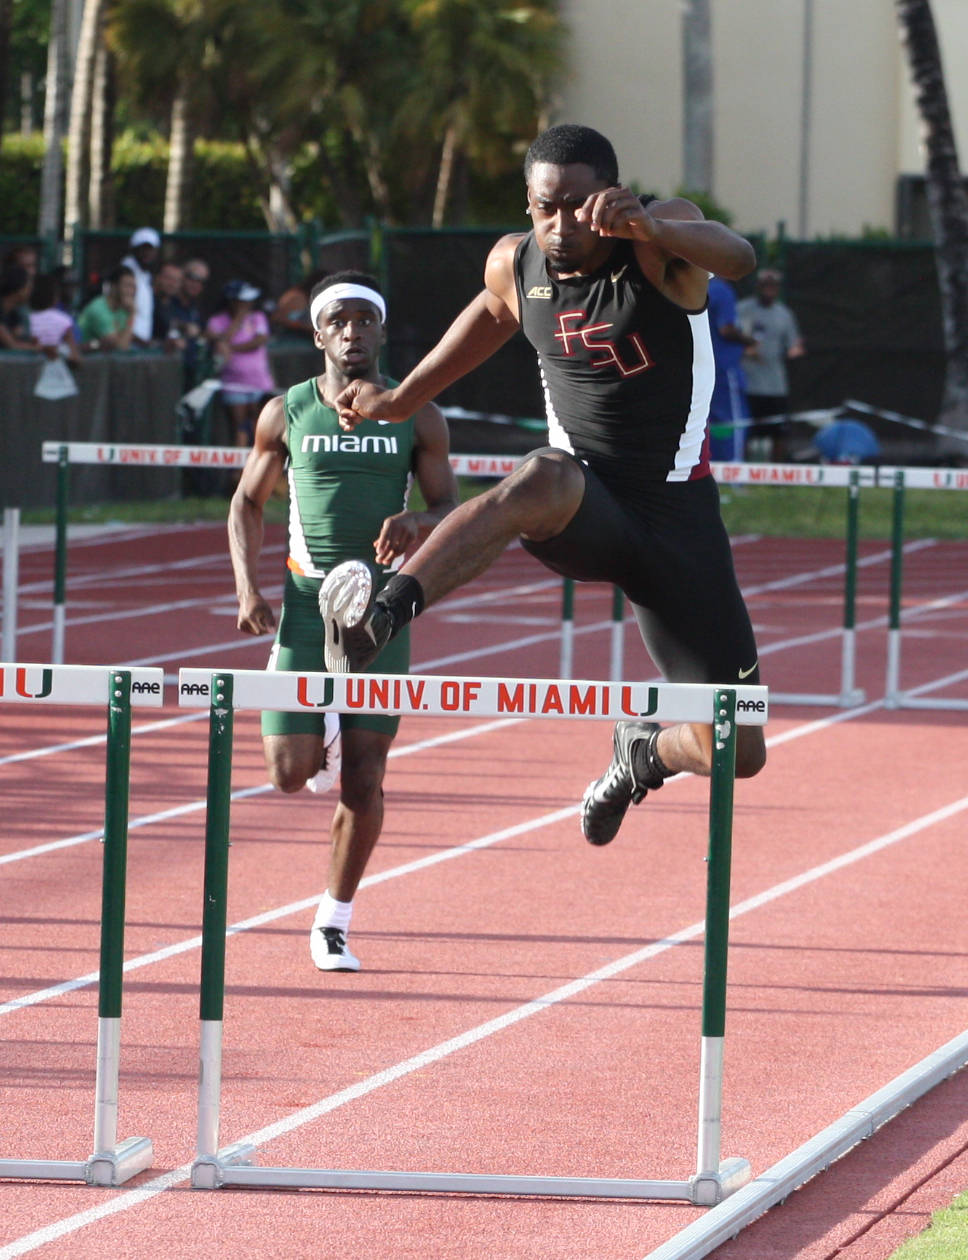 James Rhoden with another 400 hurdle PB.